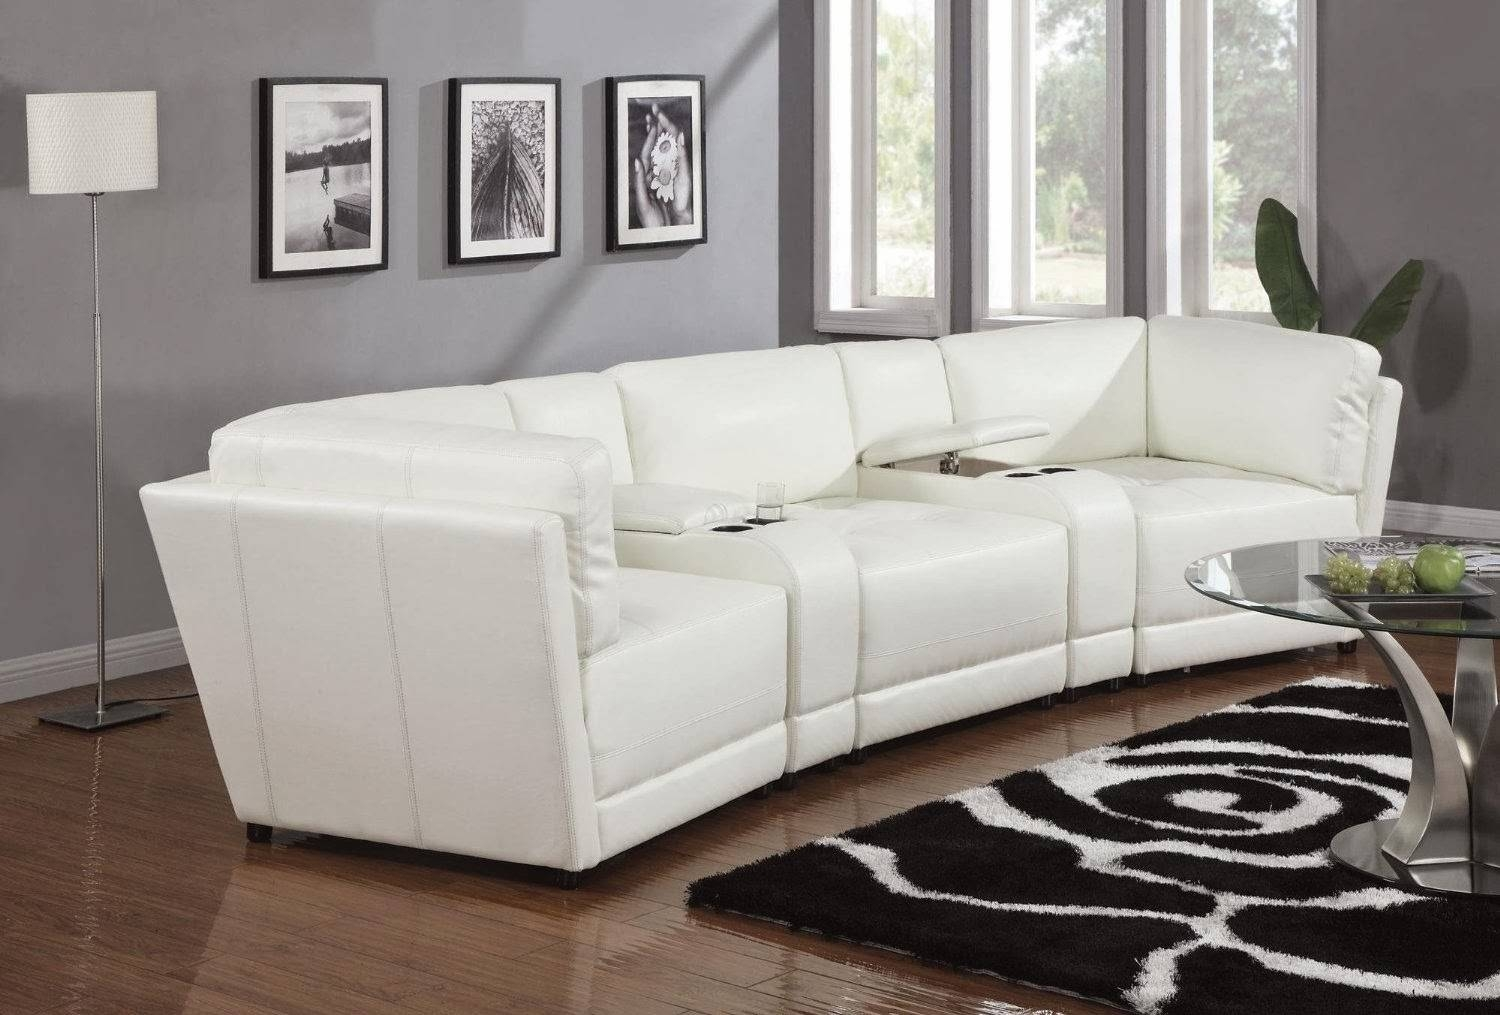 Magnificent Curved Sectional Sofas For Small Spaces #3849 for Sectional Sofas in Small Spaces (Image 11 of 25)